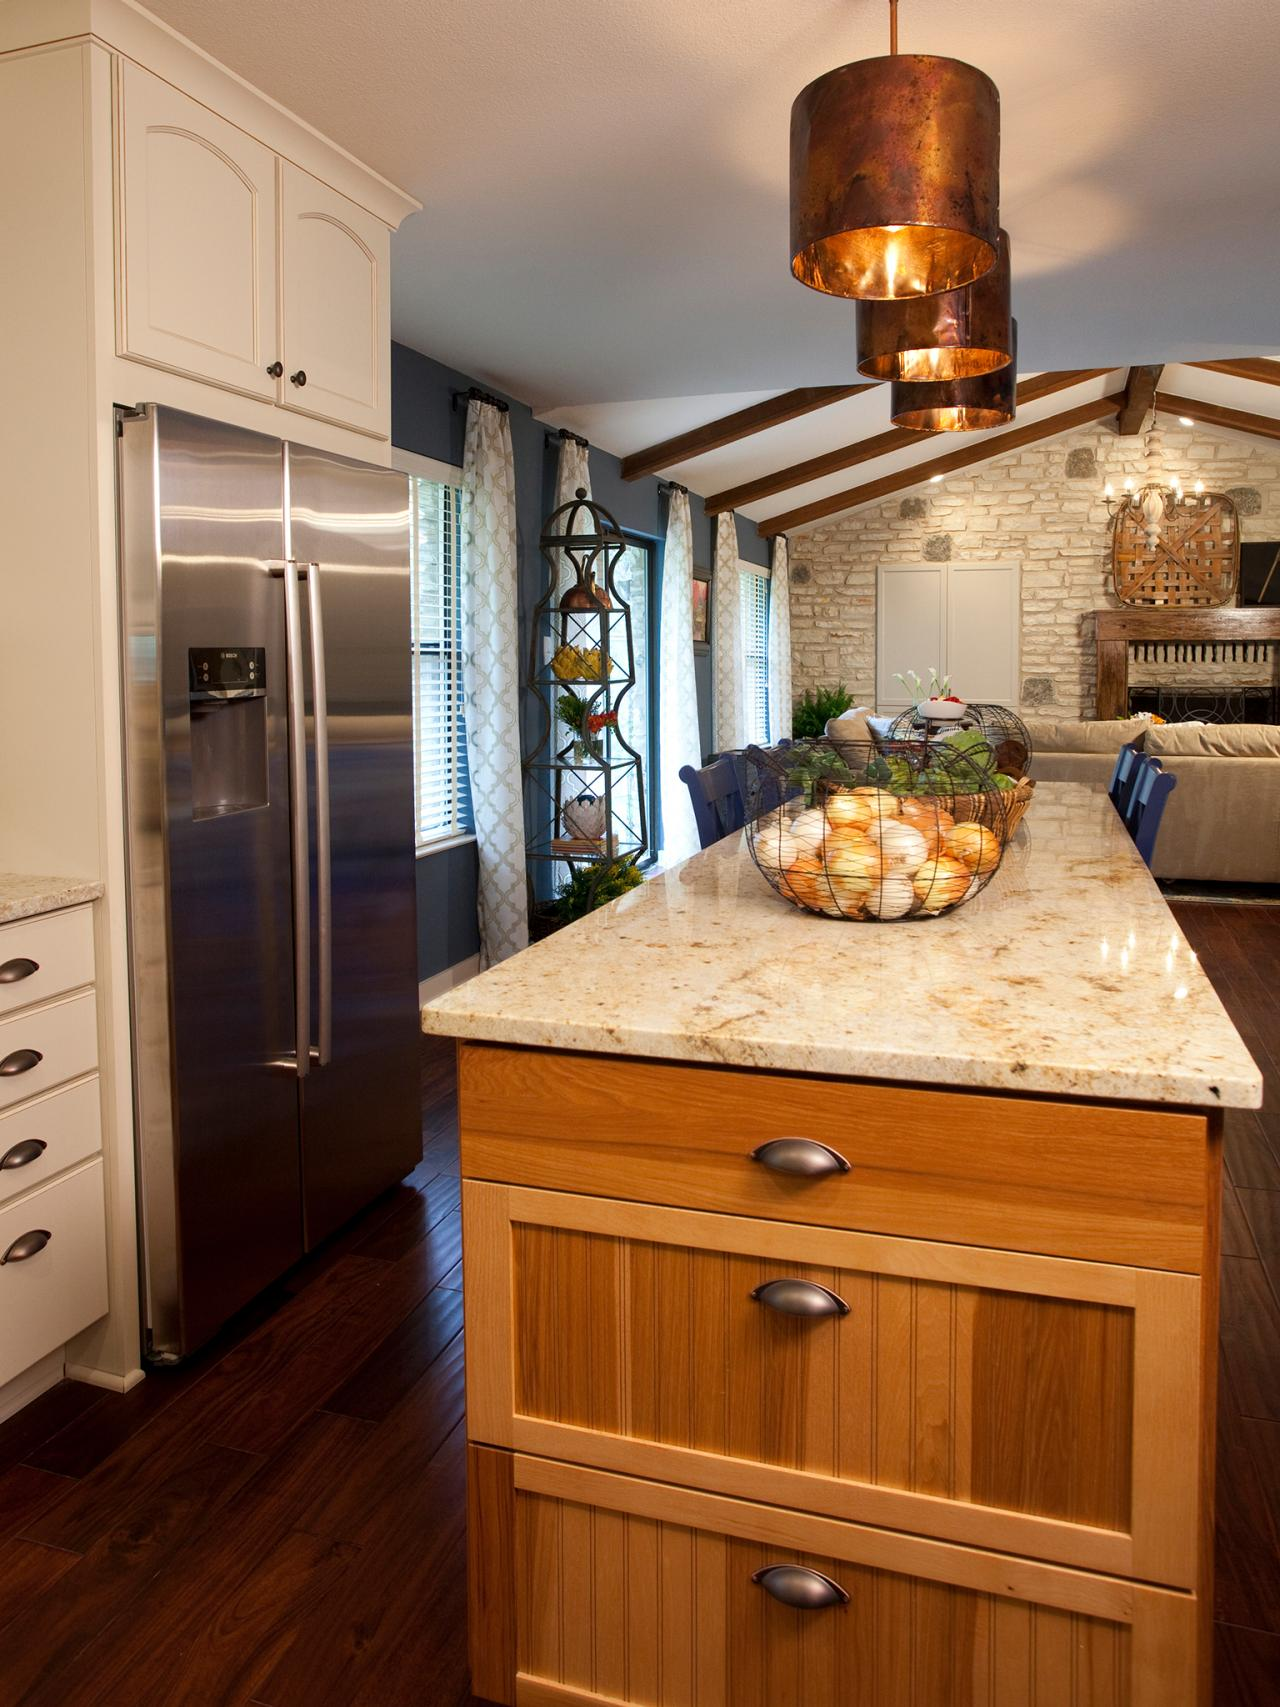 Kitchen Island Design Ideas & Tips From HGTV